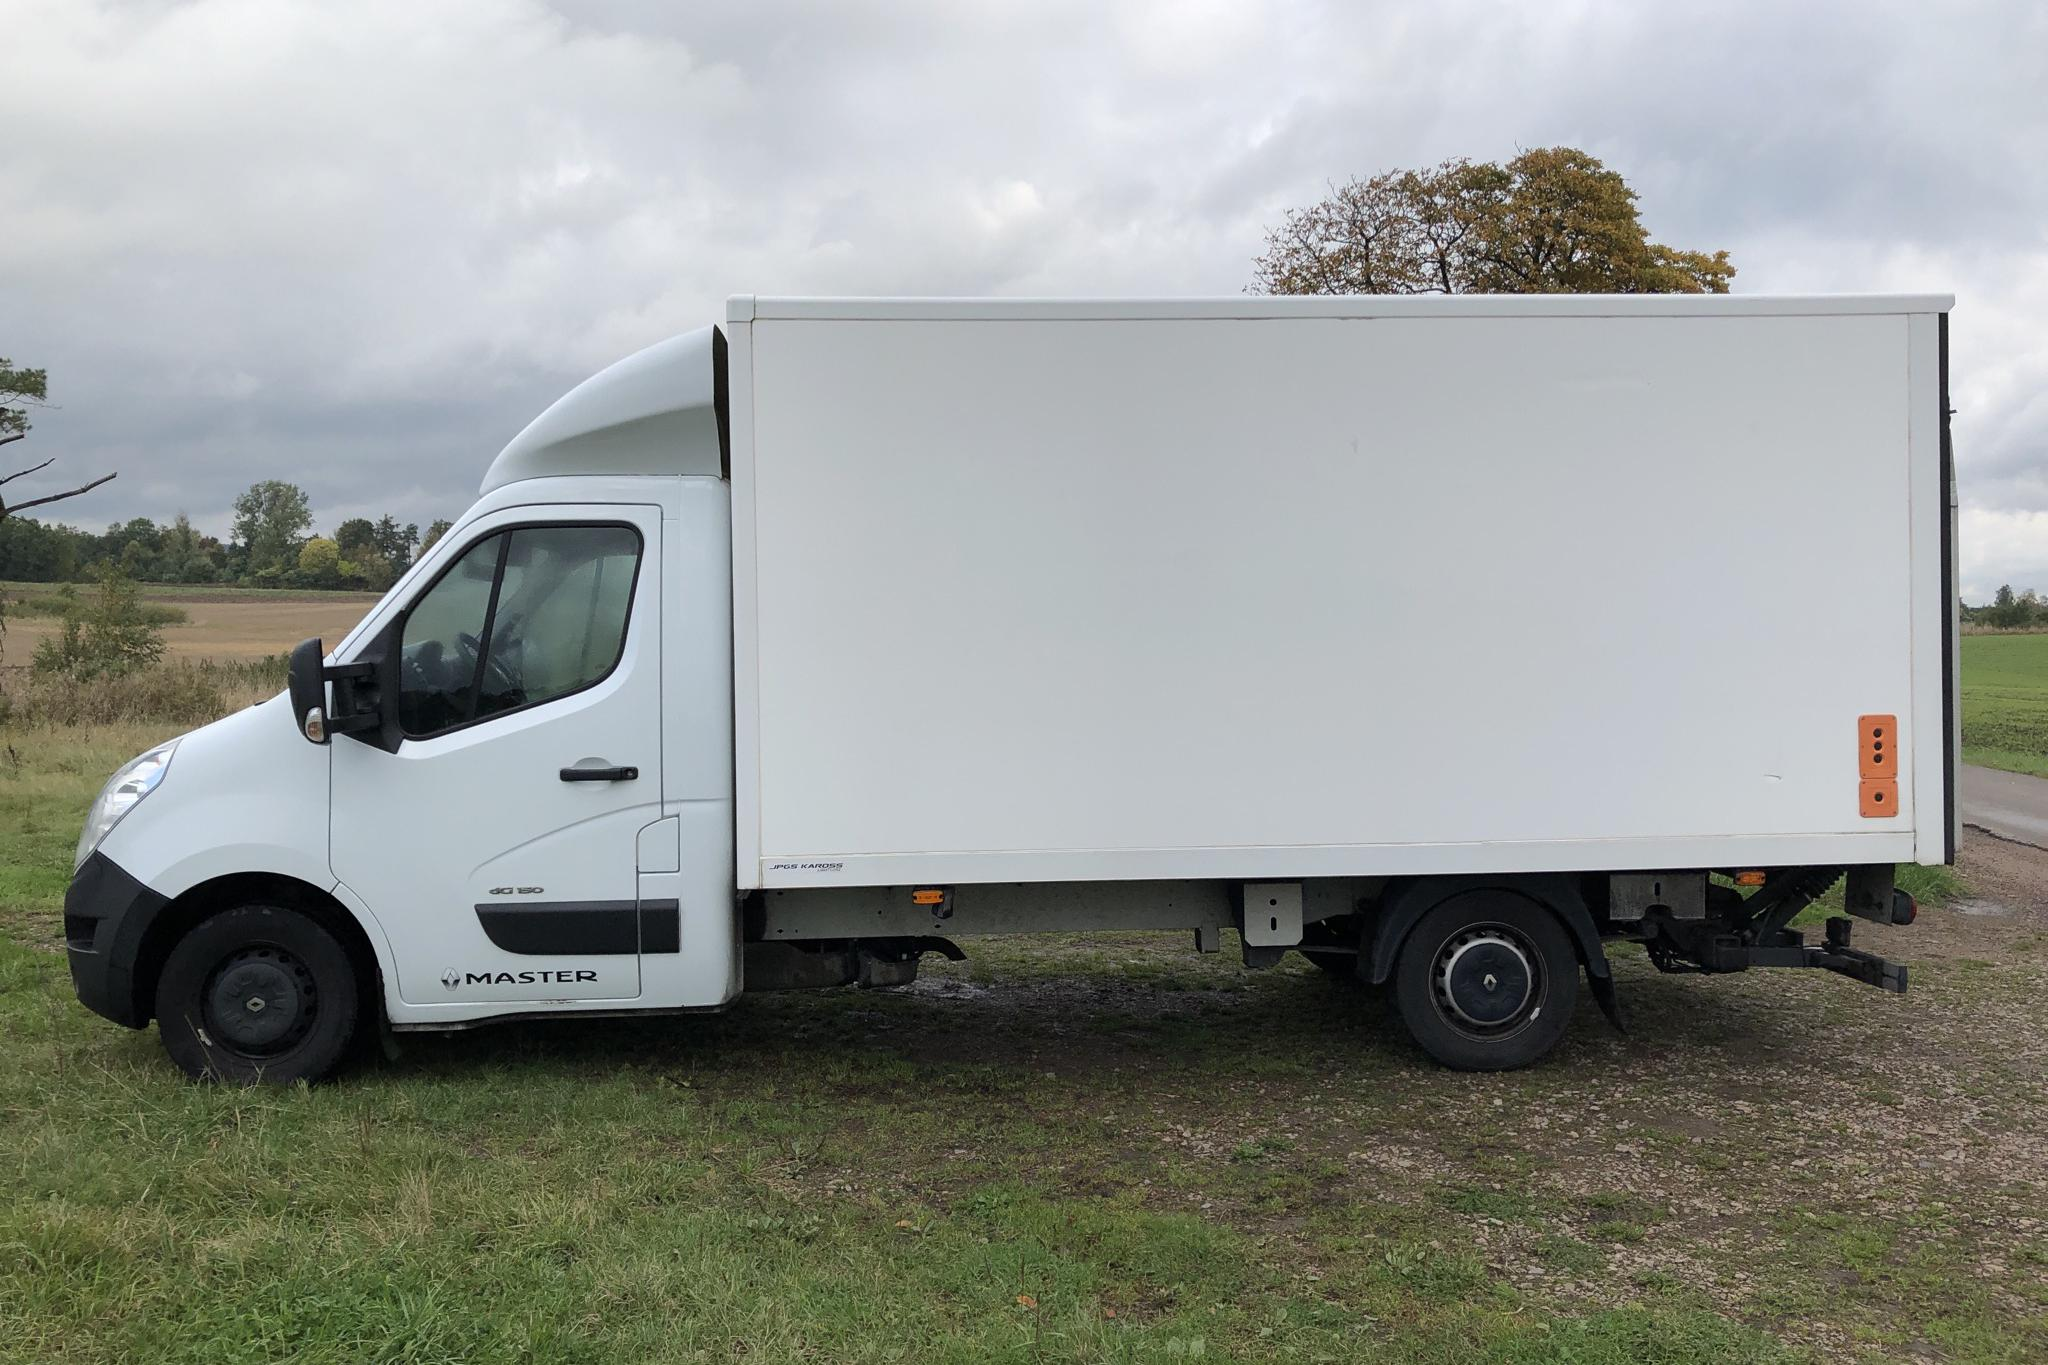 Renault Master 2.3 dCi Volymskåp 2WD (150hk) - 0 km - Automatic - white - 2016